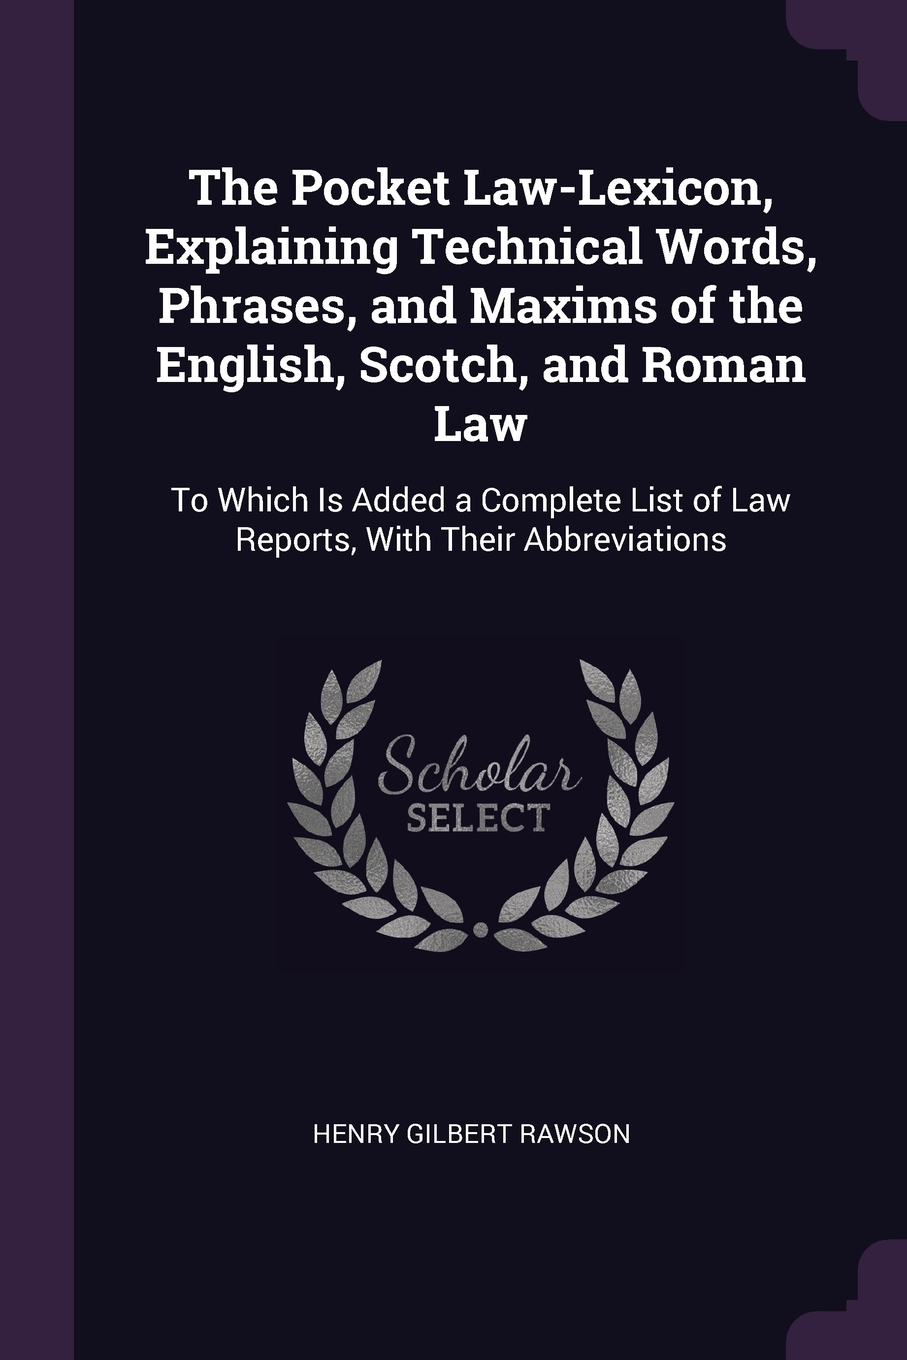 The Pocket Law-Lexicon, Explaining Technical Words, Phrases, and Maxims of the English, Scotch, and Roman Law. To Which Is Added a Complete List of Law Reports, With Their Abbreviations. Henry Gilbert Rawson